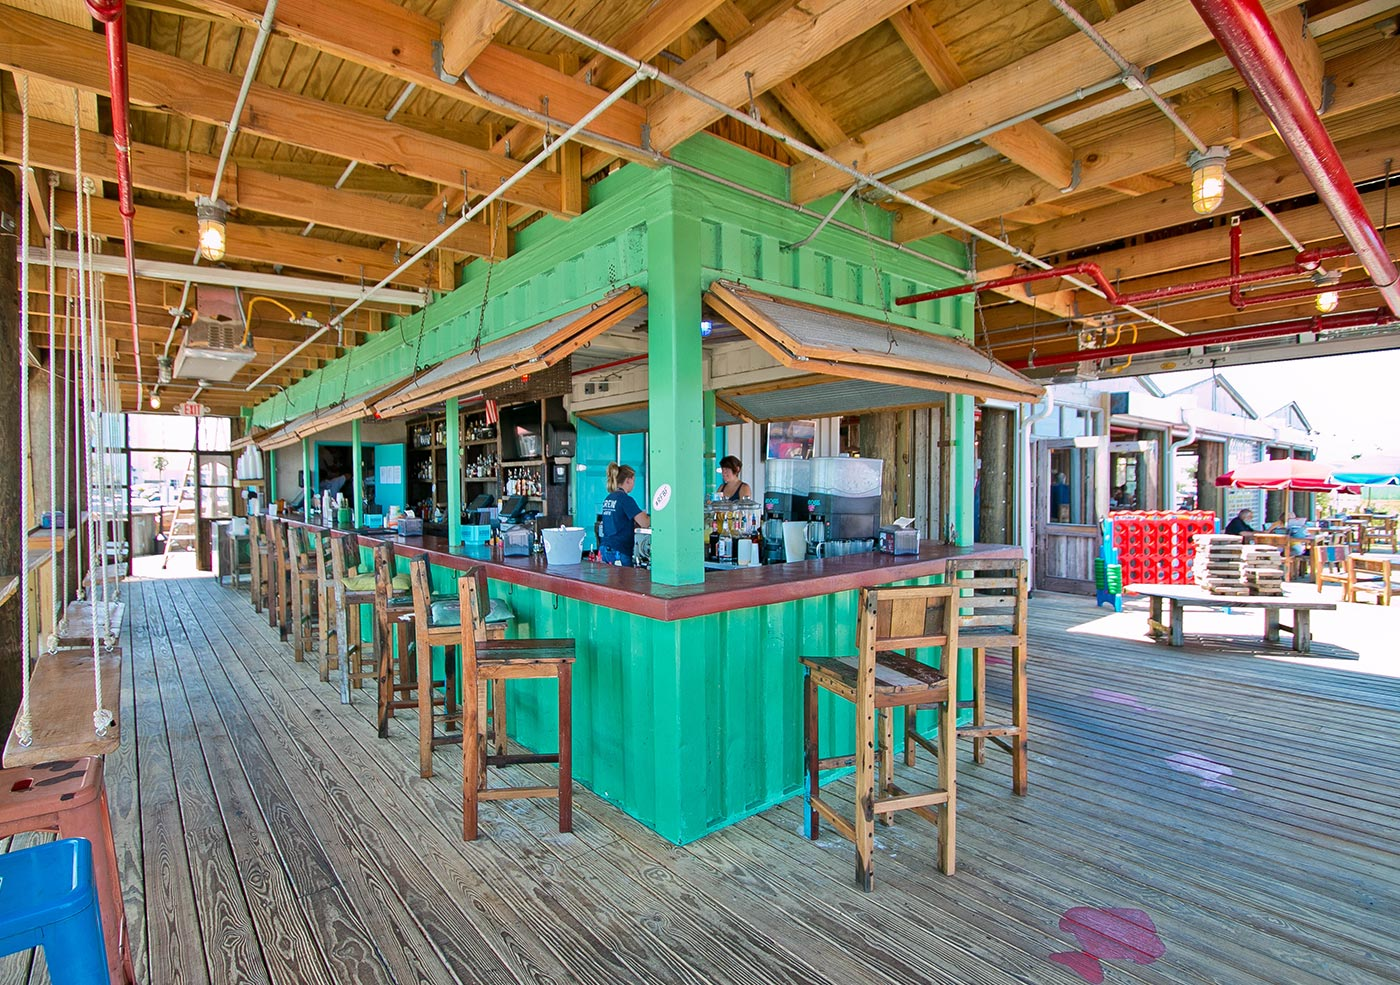 Home red fish blue fish food pensacola beach fl for Red fish restaurant